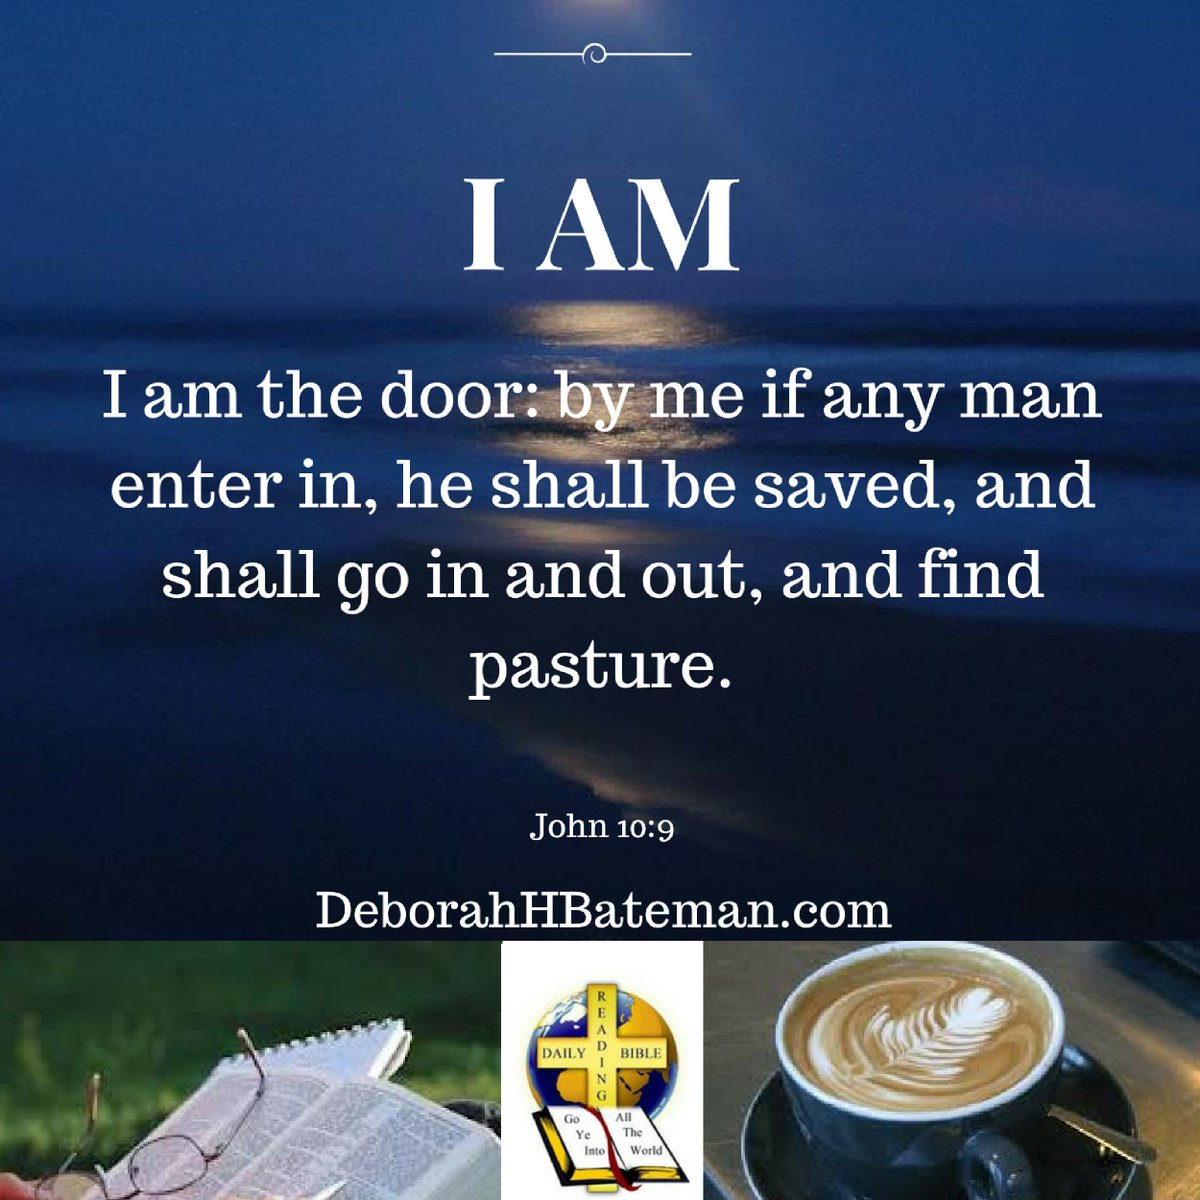 """Come study the #Bible with us """"I Am the Door"""" http://ow.ly/I9O830owbwj #DailyBibleReading #WomensBibleStudy #DeborahHBateman #Jesus #God #LORD #JesusChrist #IAM #IAmtheDoor #Christian #books #Kindle #ebooks #DailyDevotionals #DailyDevotions @RecipeforLife1"""